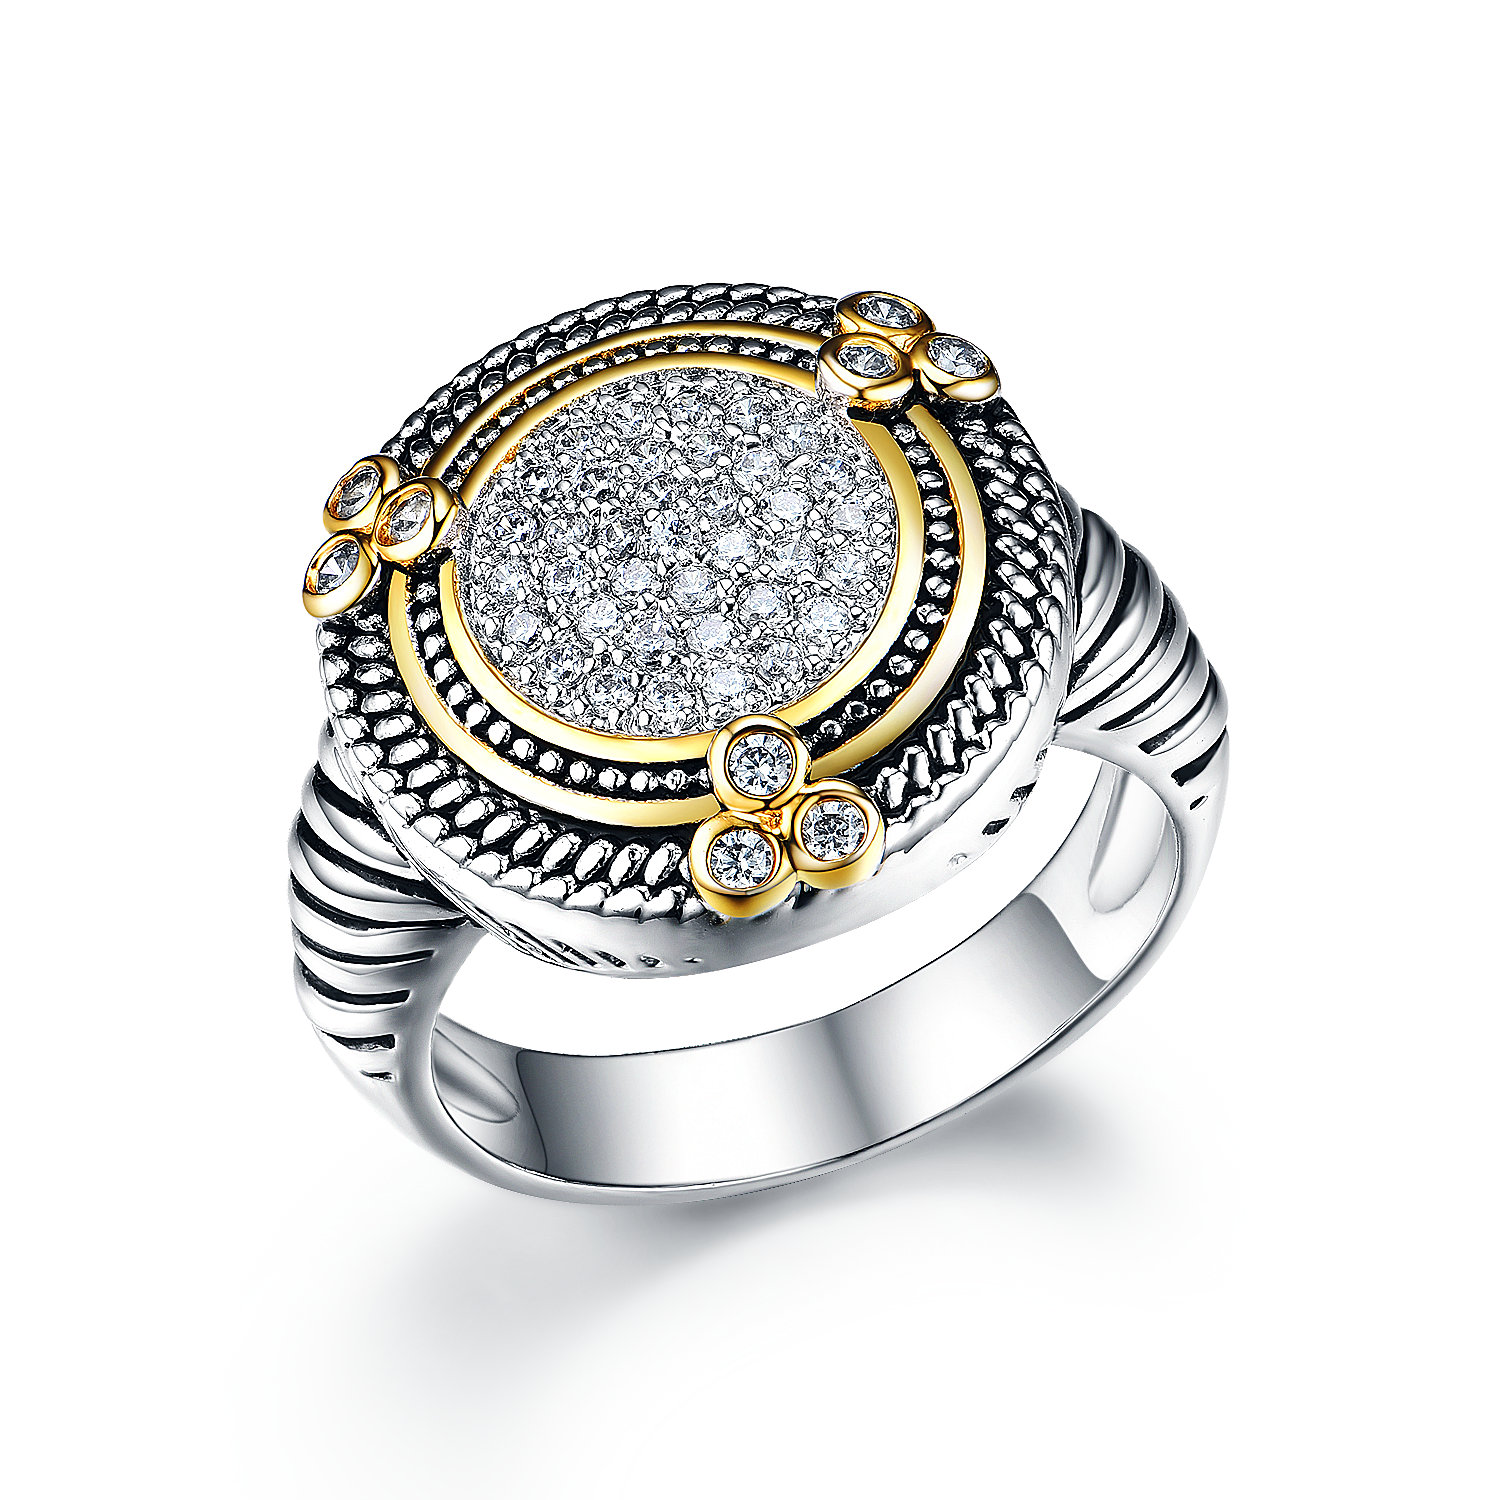 ST2765R-Designer inspired Cable Texture Two-tone Round Ring with White CZ in center in brass from China reliable jewelry factory